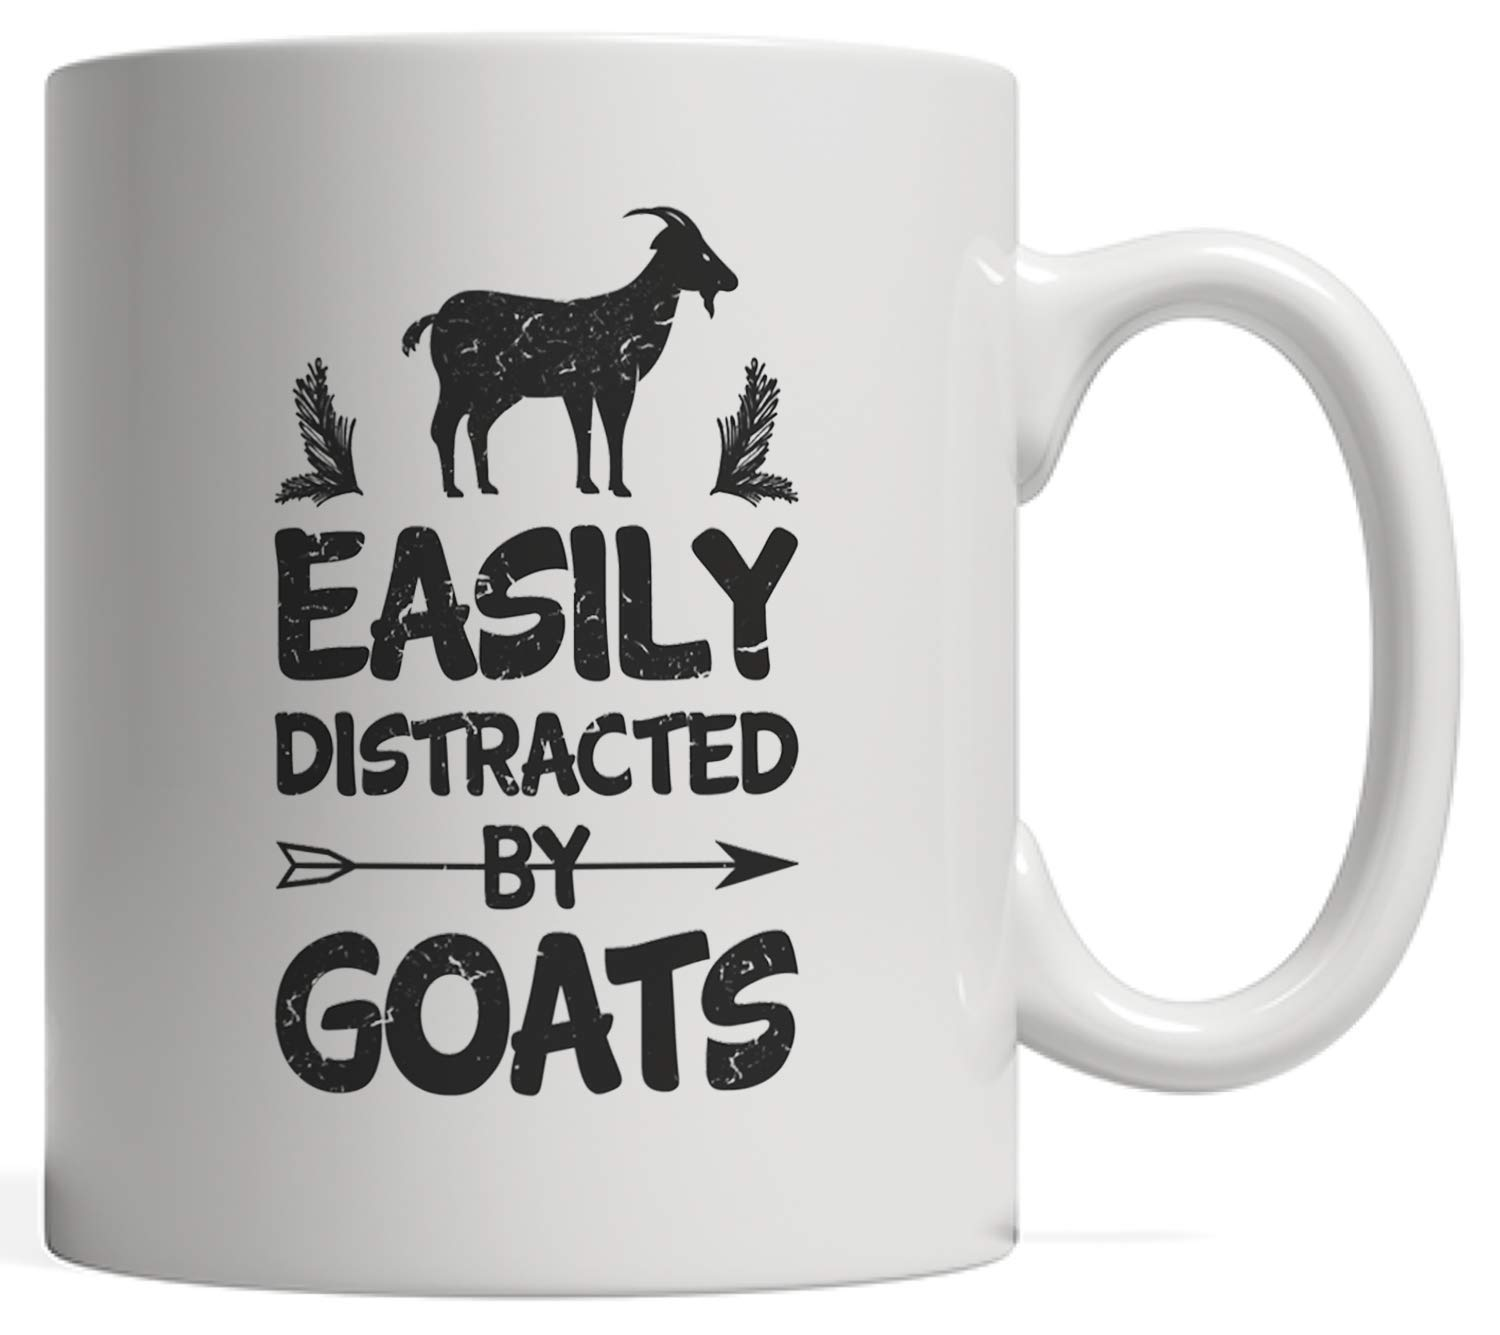 ab880007 Easily Distracted By Goats Mug - Great Gag Gift for Goat Lovers,  Whispererers & Riders - Give it to Your Goat Dad! For your Crazy Goat Lady  Friend | Also ...